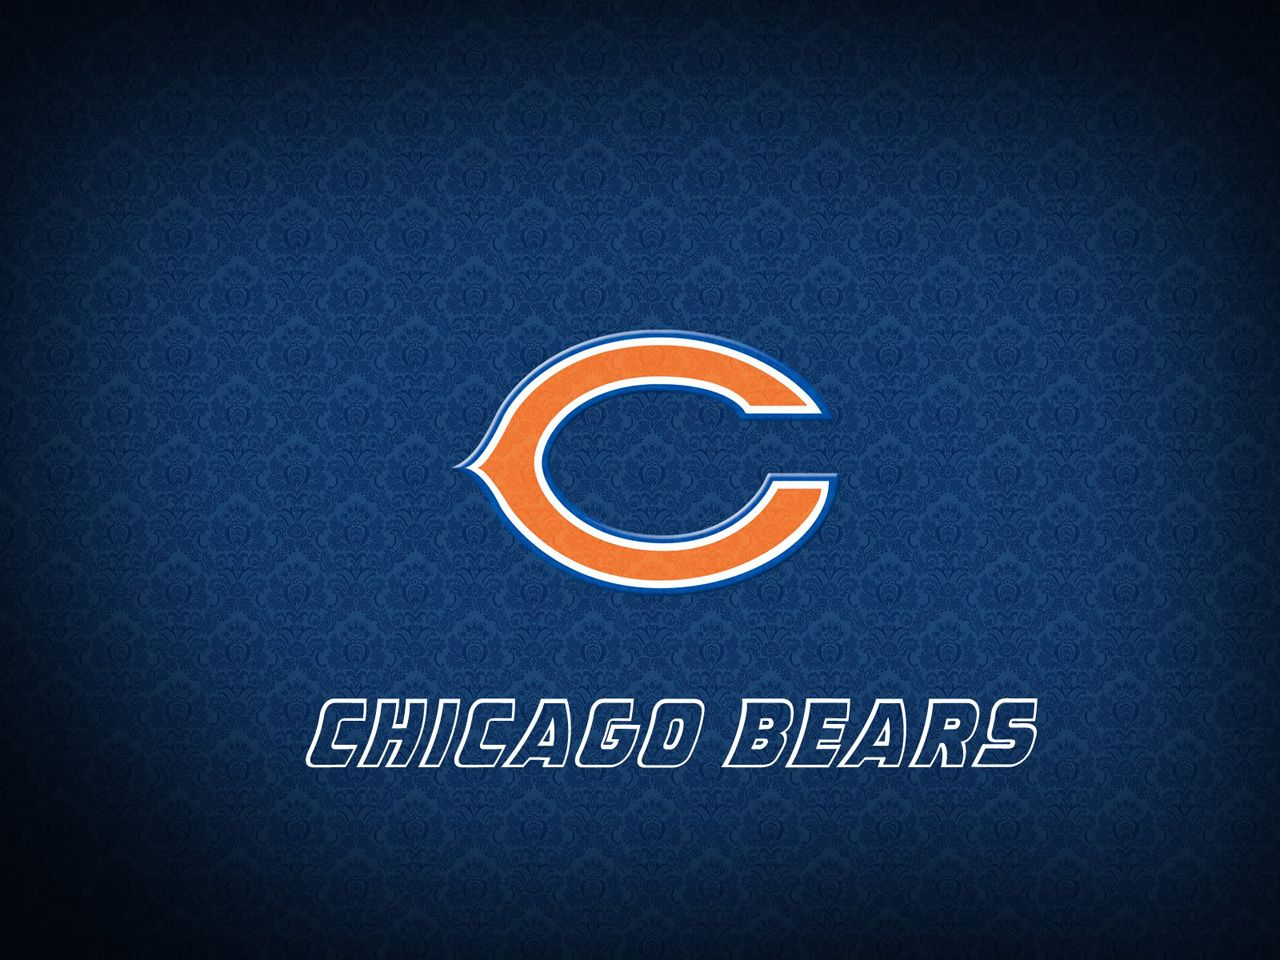 Chicago Bears Wallpapers 2015 1280x960